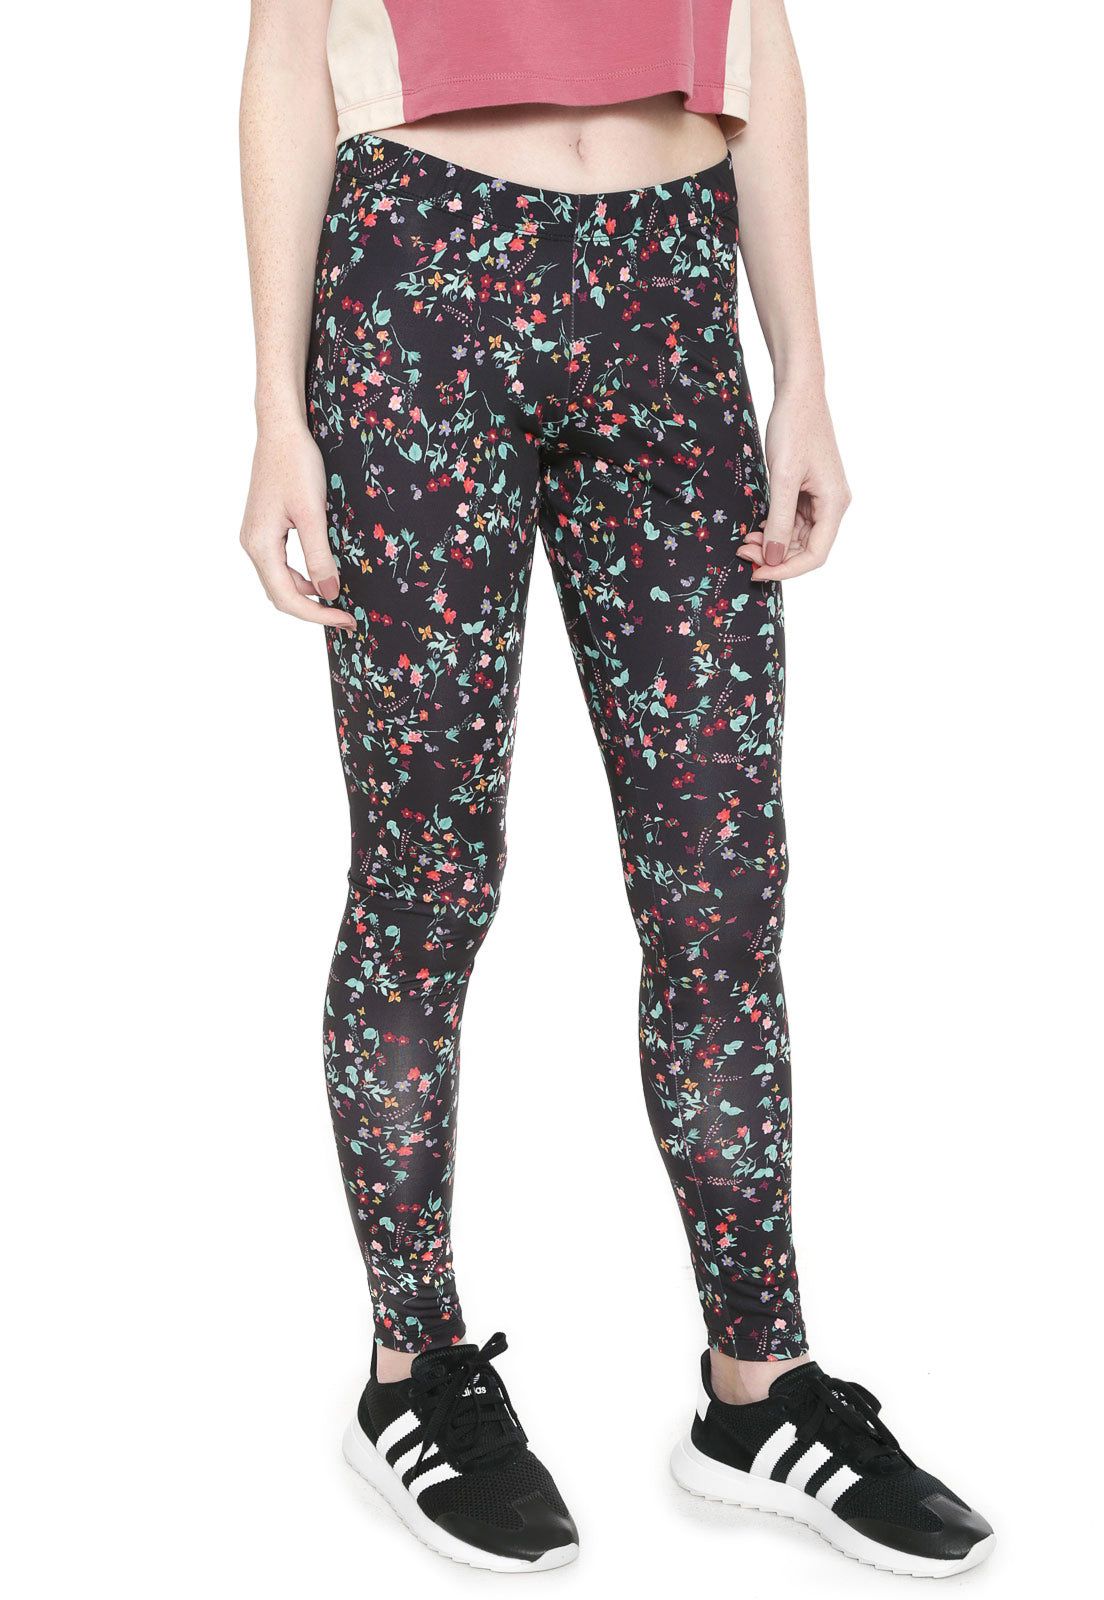 Adidas Originals Floral Tights Multicolor DH4240